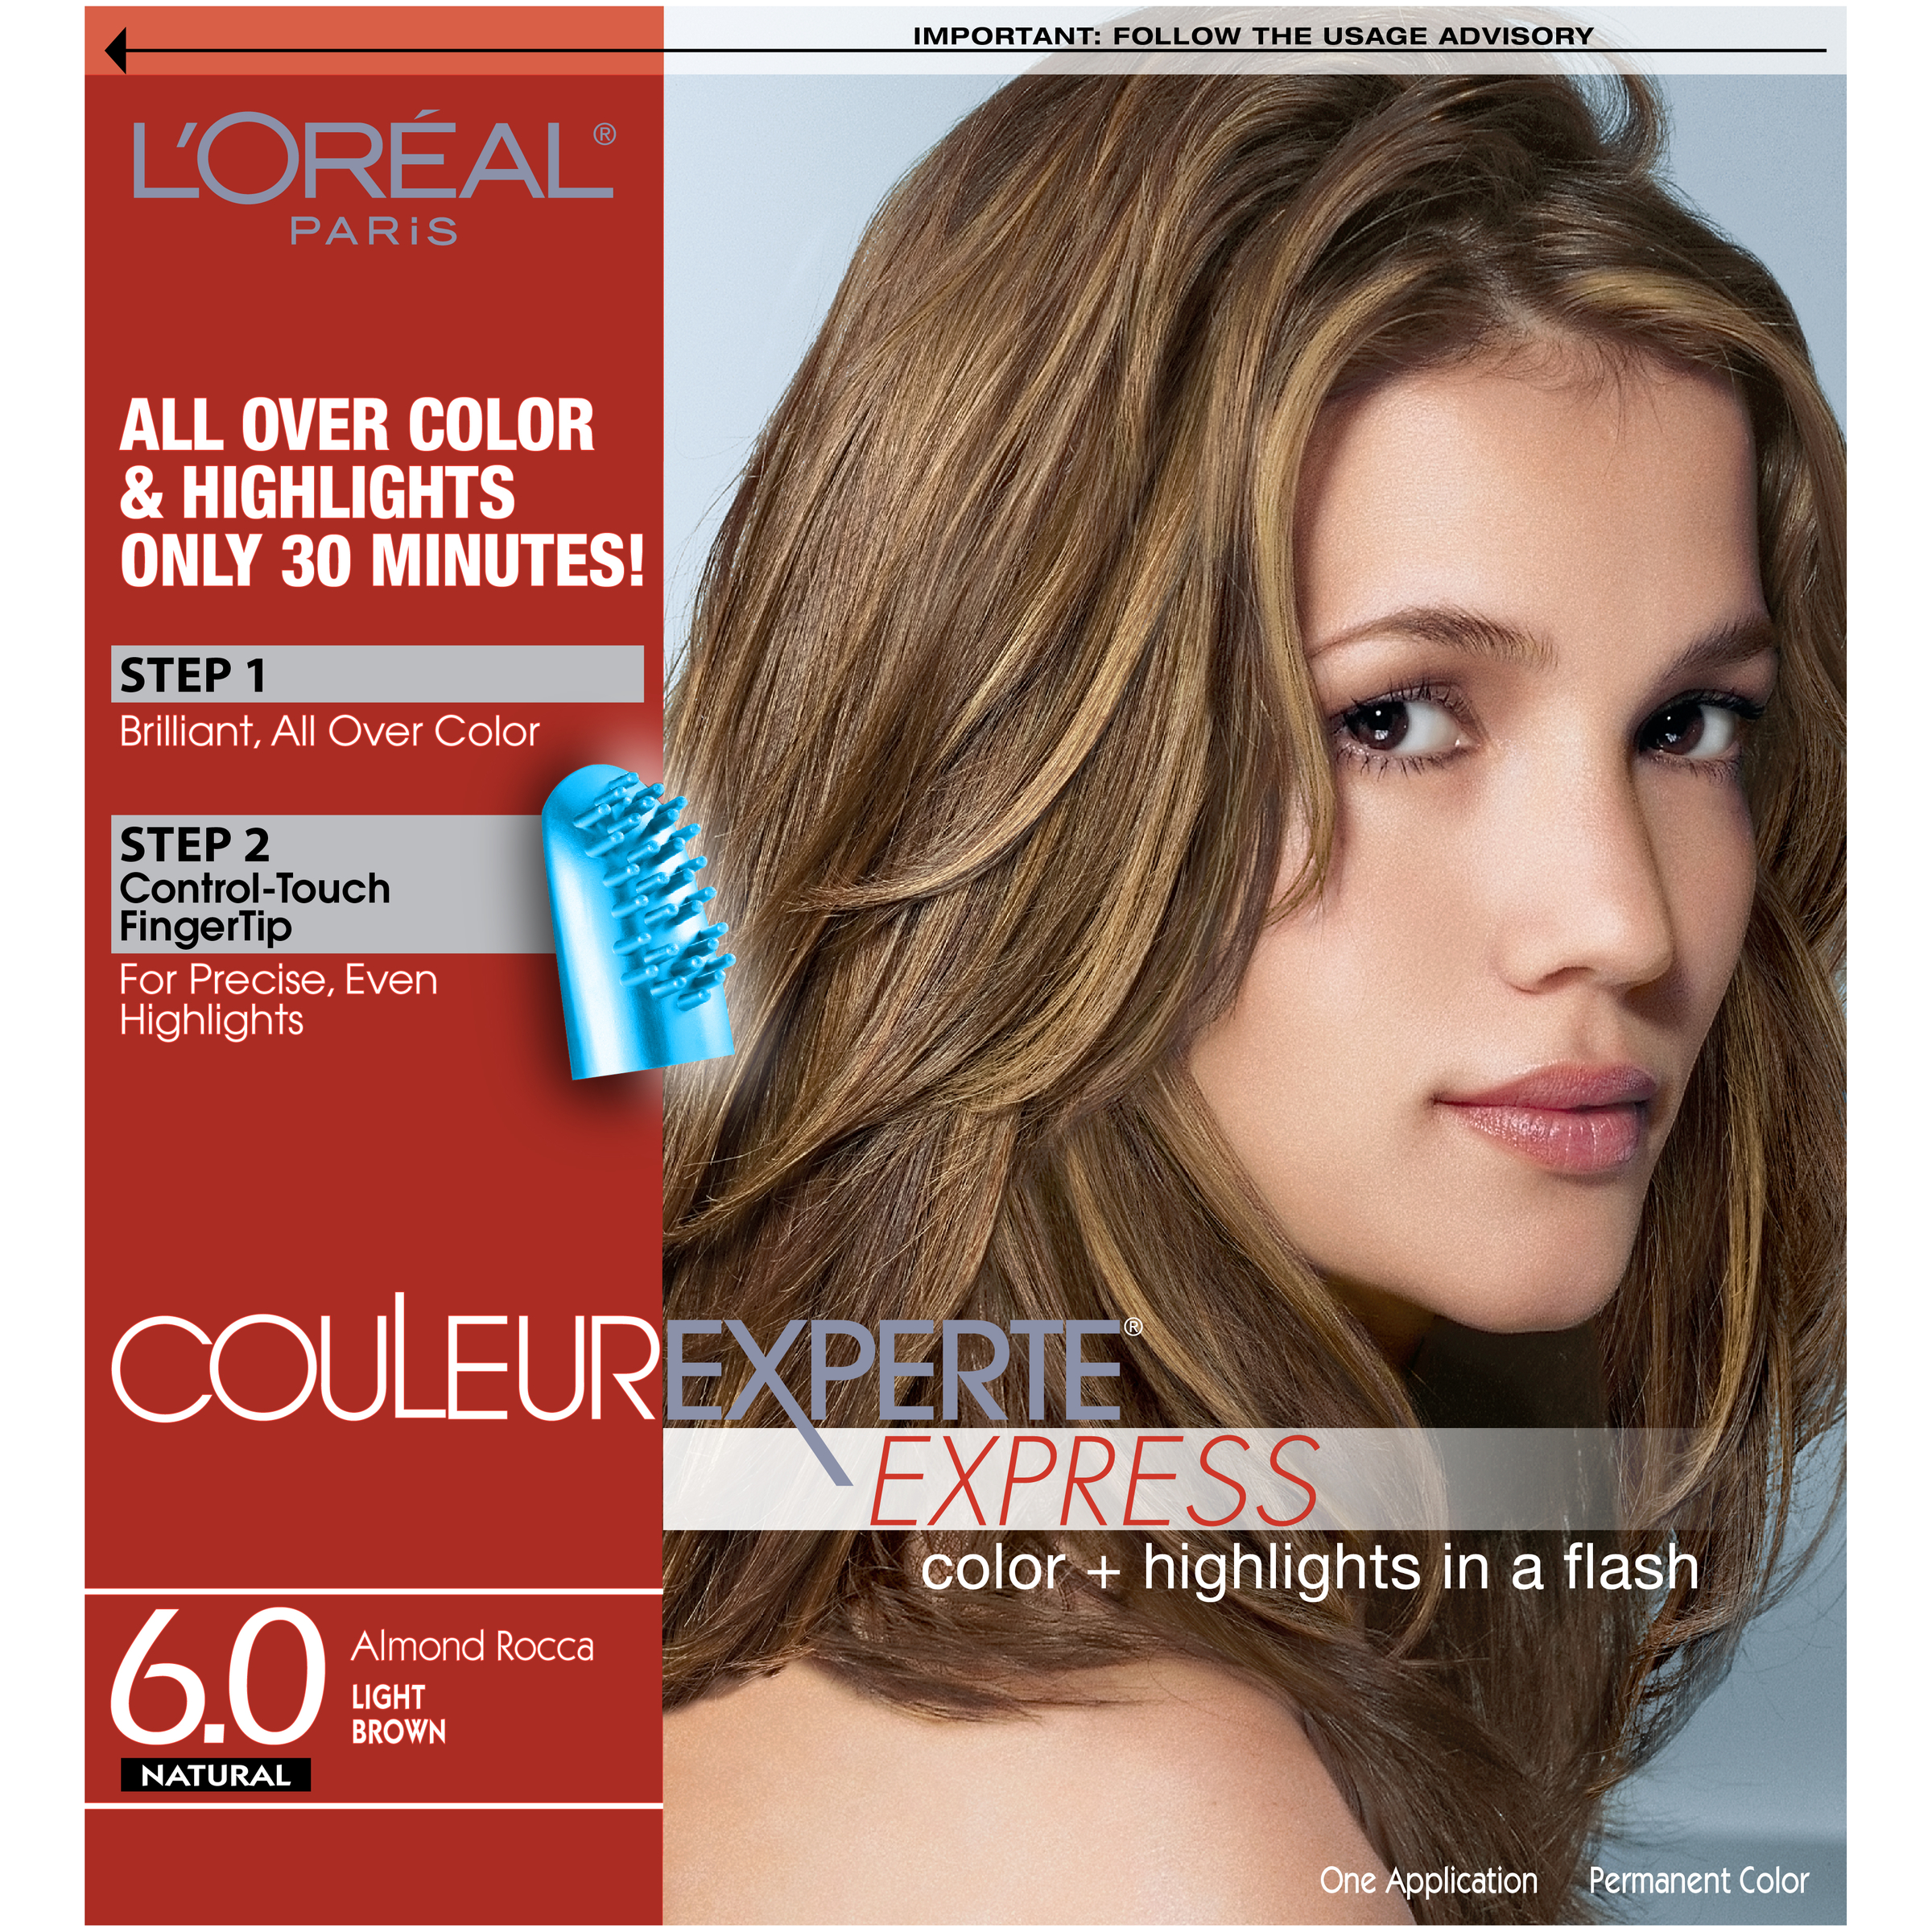 hair avon world brown goslindisasters above colour lighting my light dye